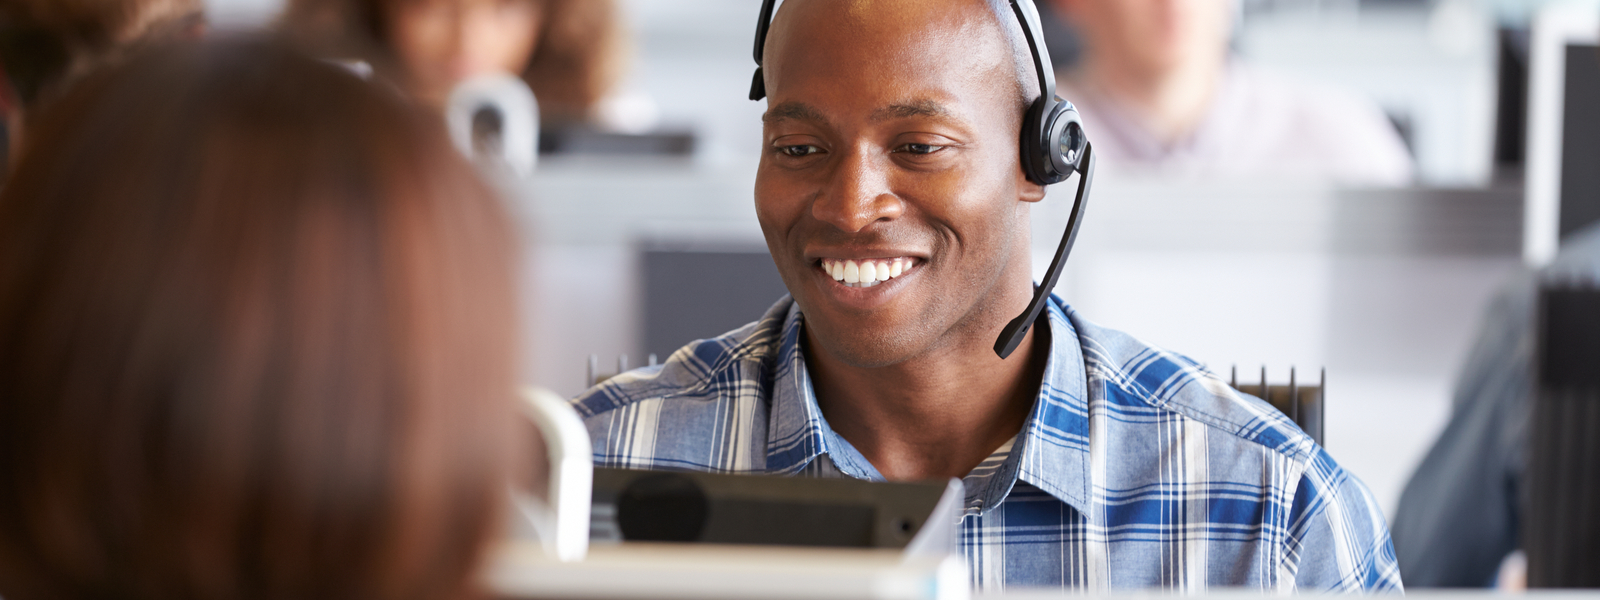 List Of Call Centers Call Center Duties Responsibilities For Agents Supervisors